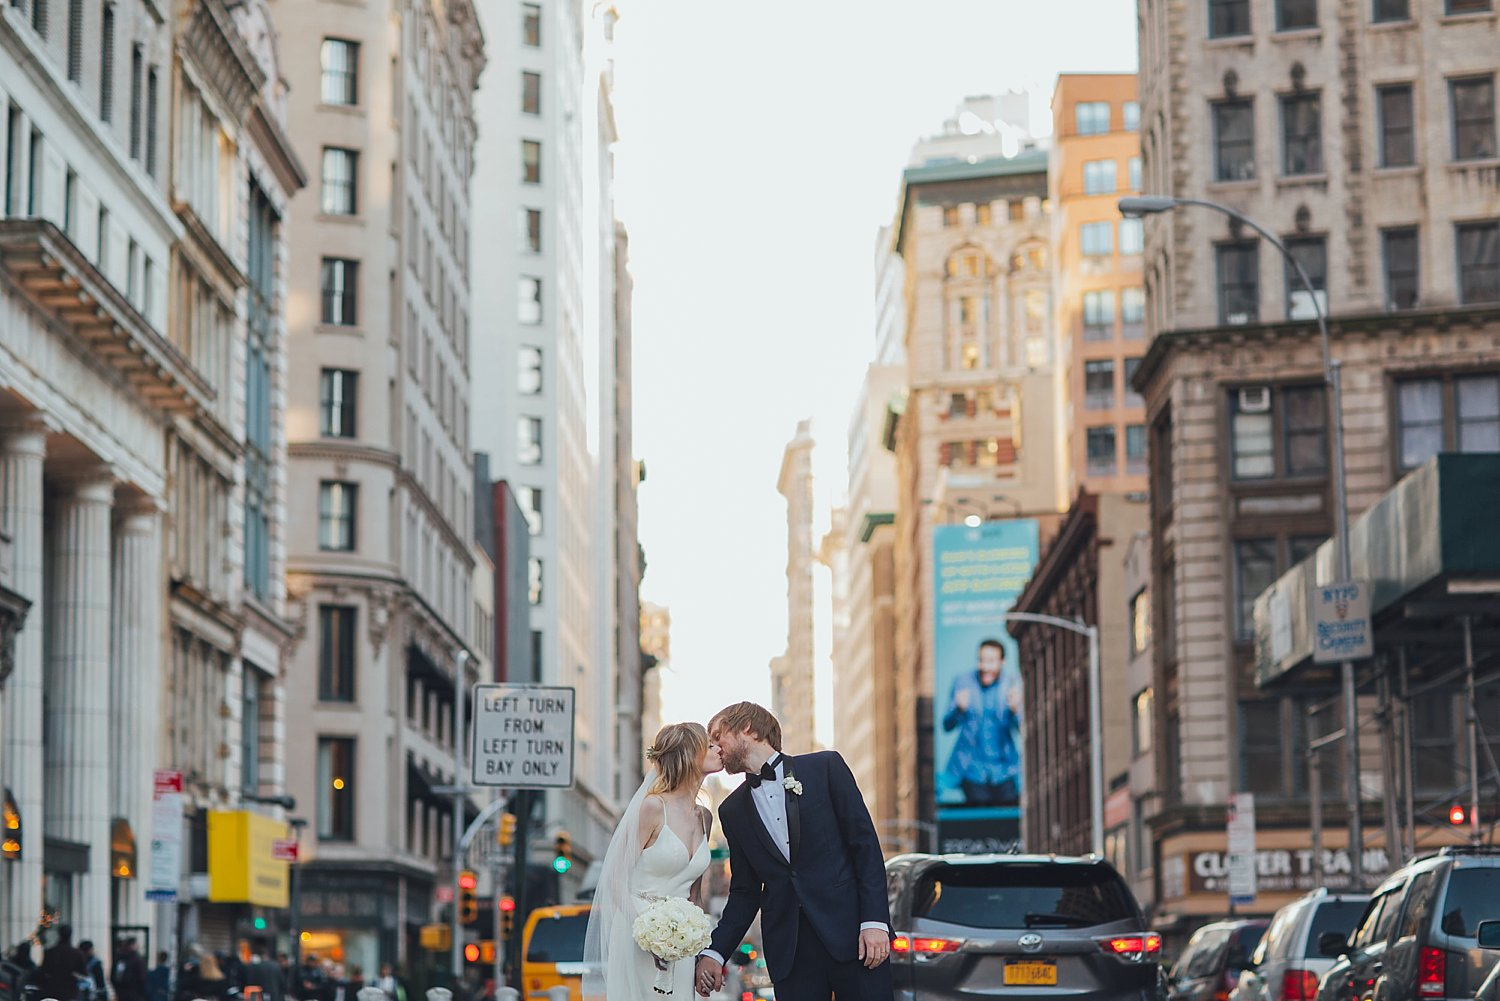 nyc-wedding-photography-nj-tri-state-cinematography-intothestory-by-moo-jae_0200.jpg